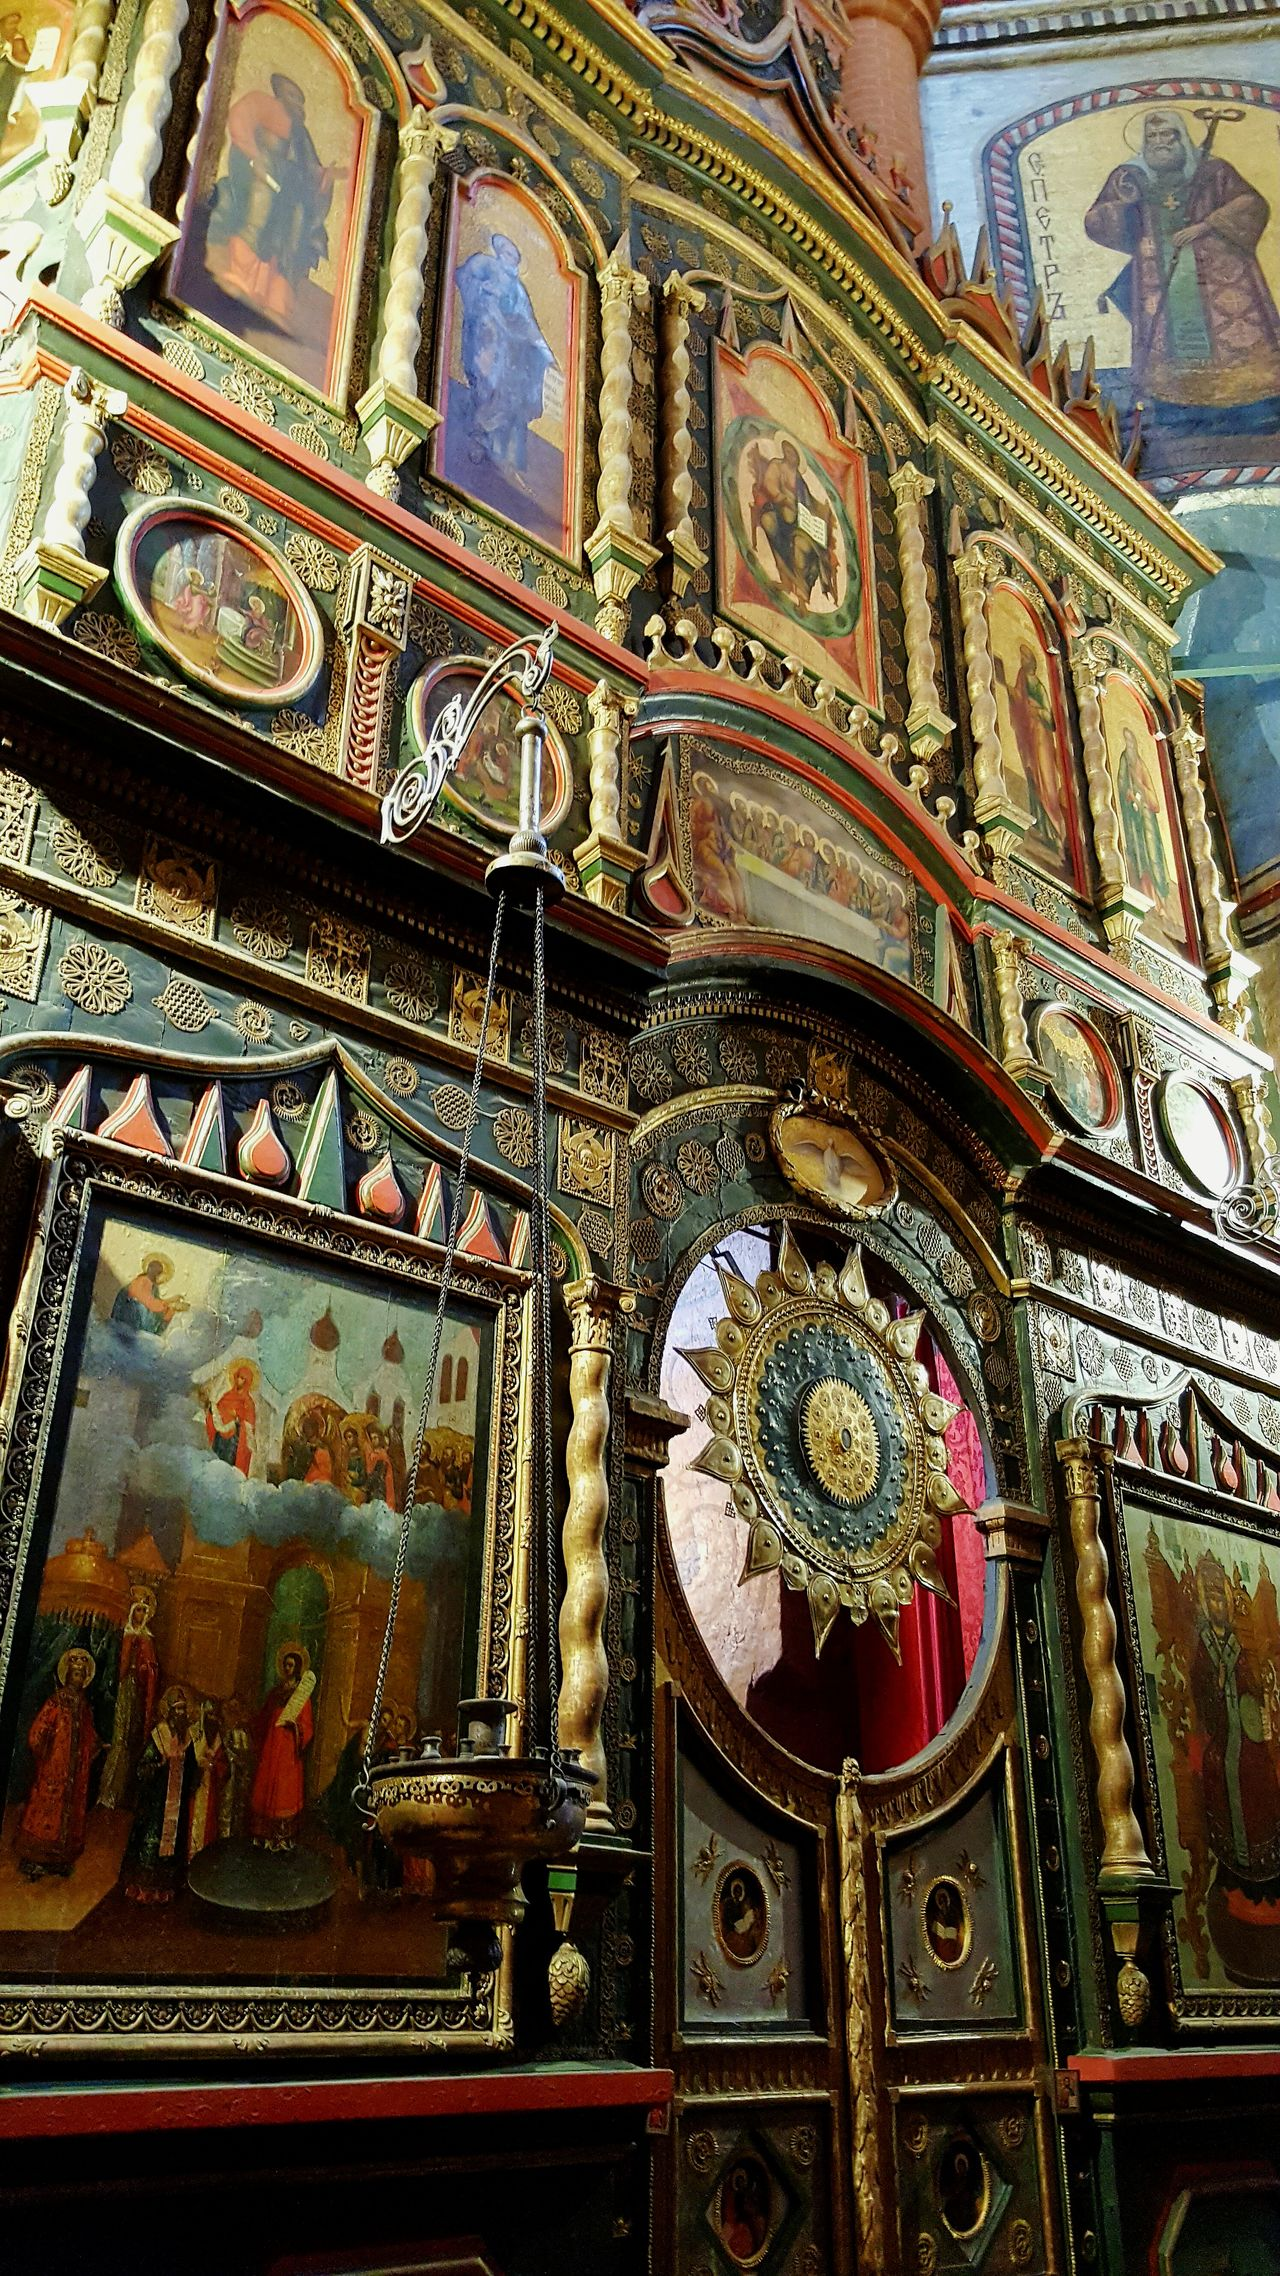 Close-up Indoors  Architecture No People Place Of Worship Wooden Church Russia Moscow Ortodox Church Orthodox Church St. Basil's Cathedral In Moscow St. Basil's Cathedral Cathedral Orthodox Place Of Worship Inside Photography Travel Destinations Spirituality Religion Ikone Painting Altar